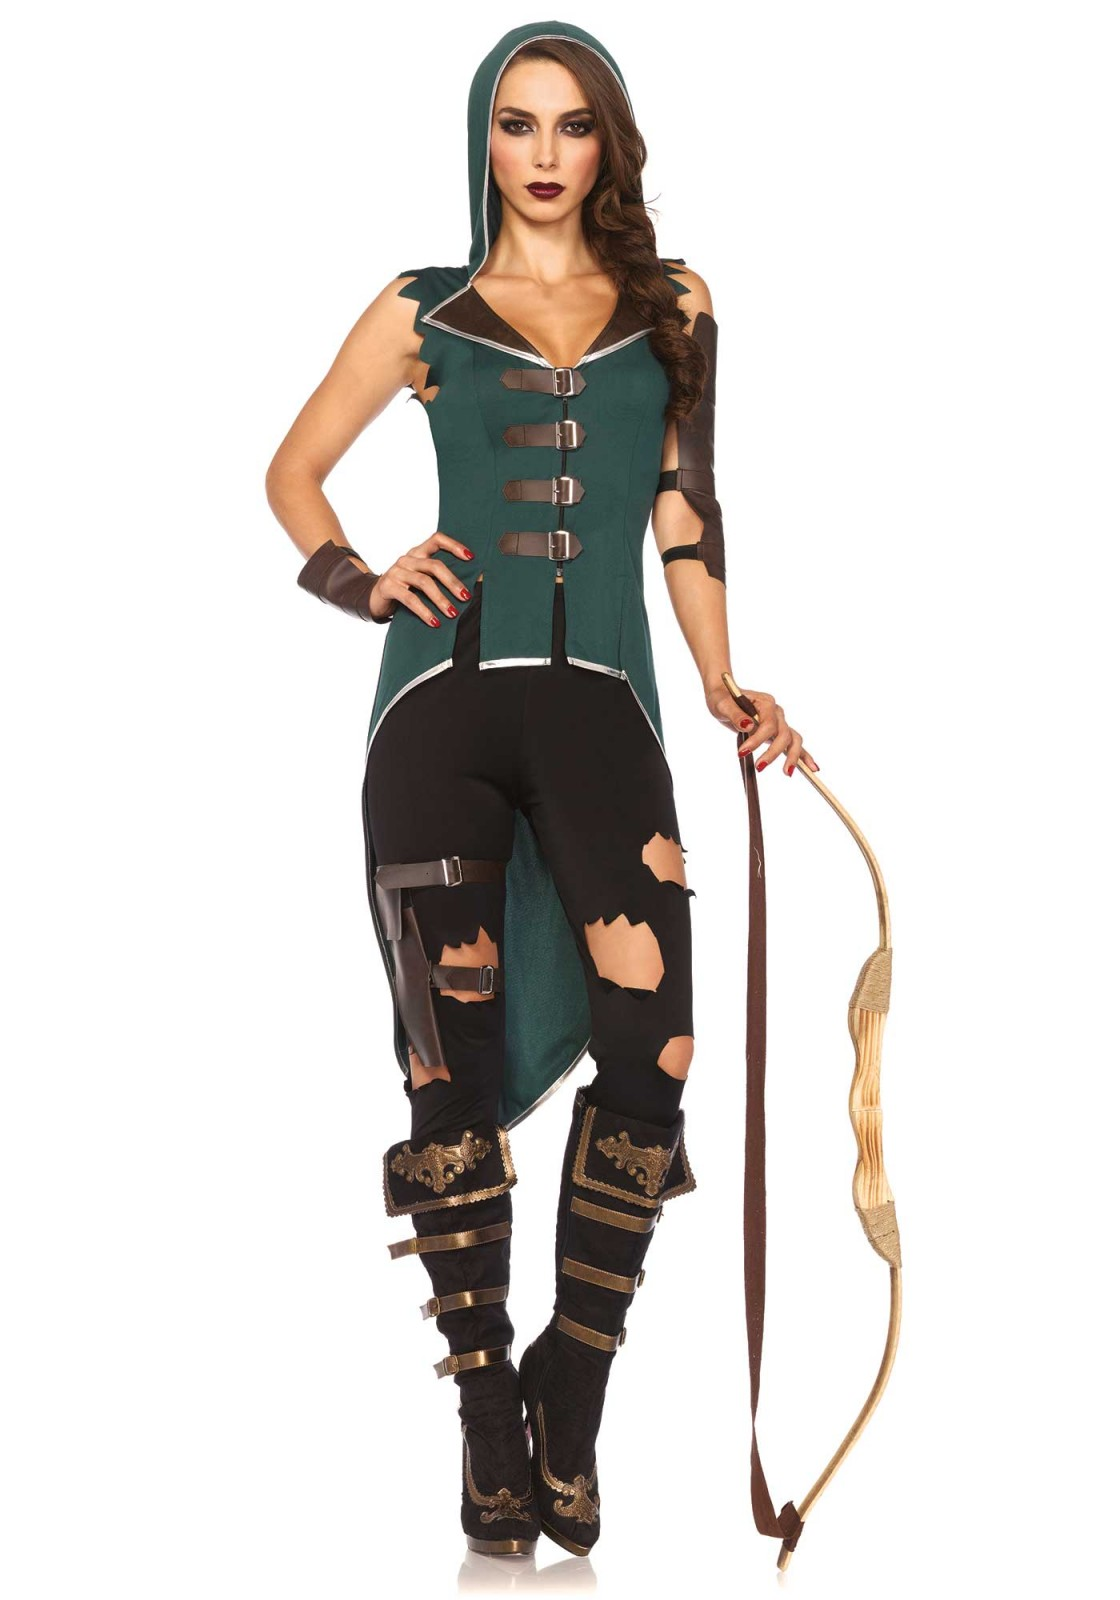 Robin Hood's shows its true rebel heart with this costume. This 5PC Rebel Robin Hood costume set includes a hooded top with high front, low back and buckle closures, tattered leggings, faux leather arm cuffs and wrist cuffs, and matching sheath leg garter. Please take note that the bow is not included.